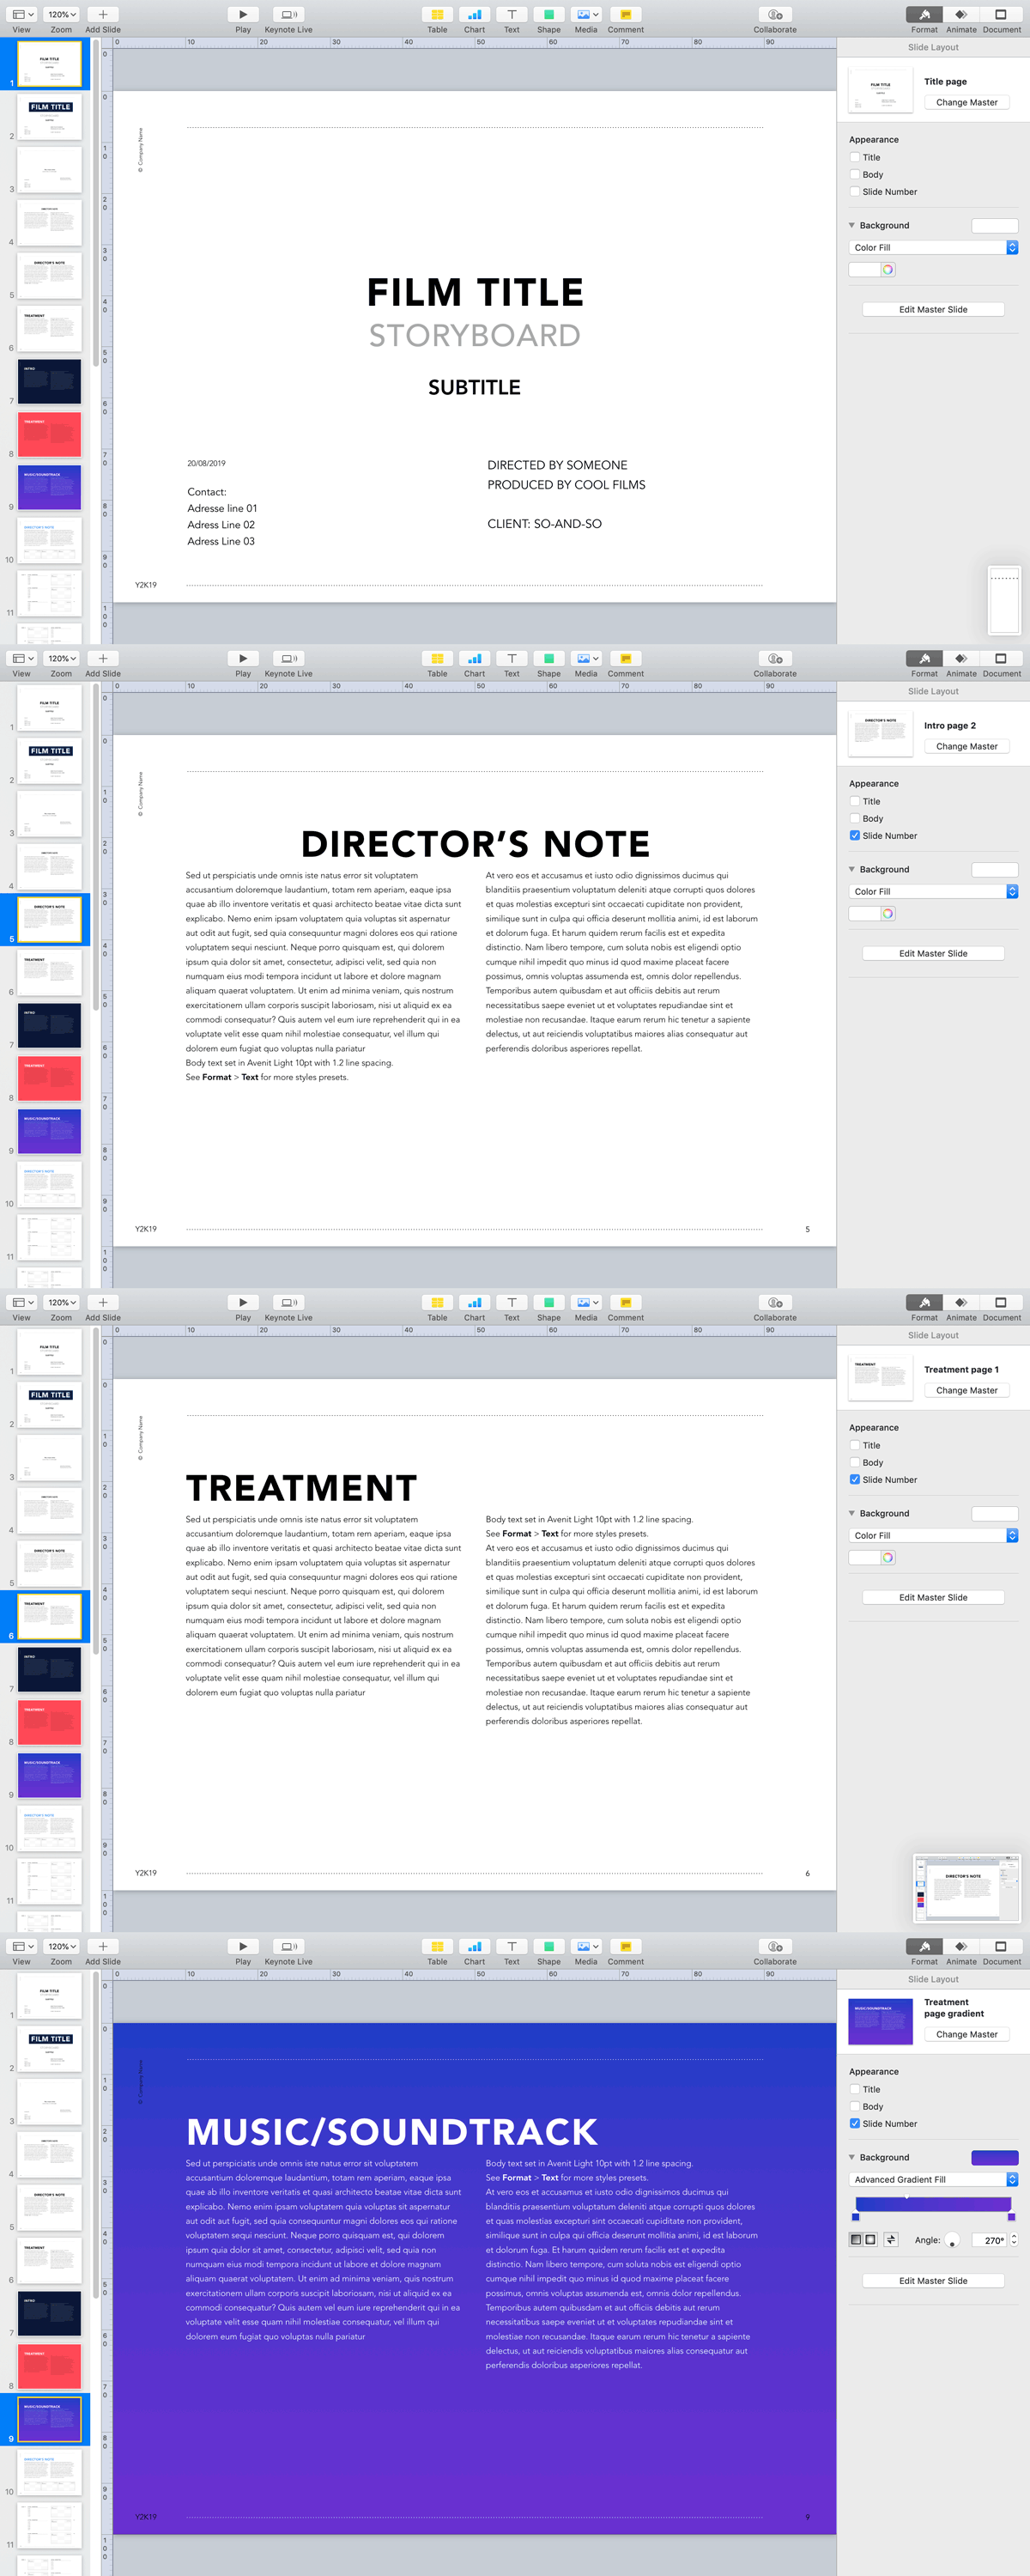 Apple Keynote Storyboard Theme Advertising Film Treatment Scope 1.85×1 Avenir Light 10pt on DIN A4 landscape, pages sample